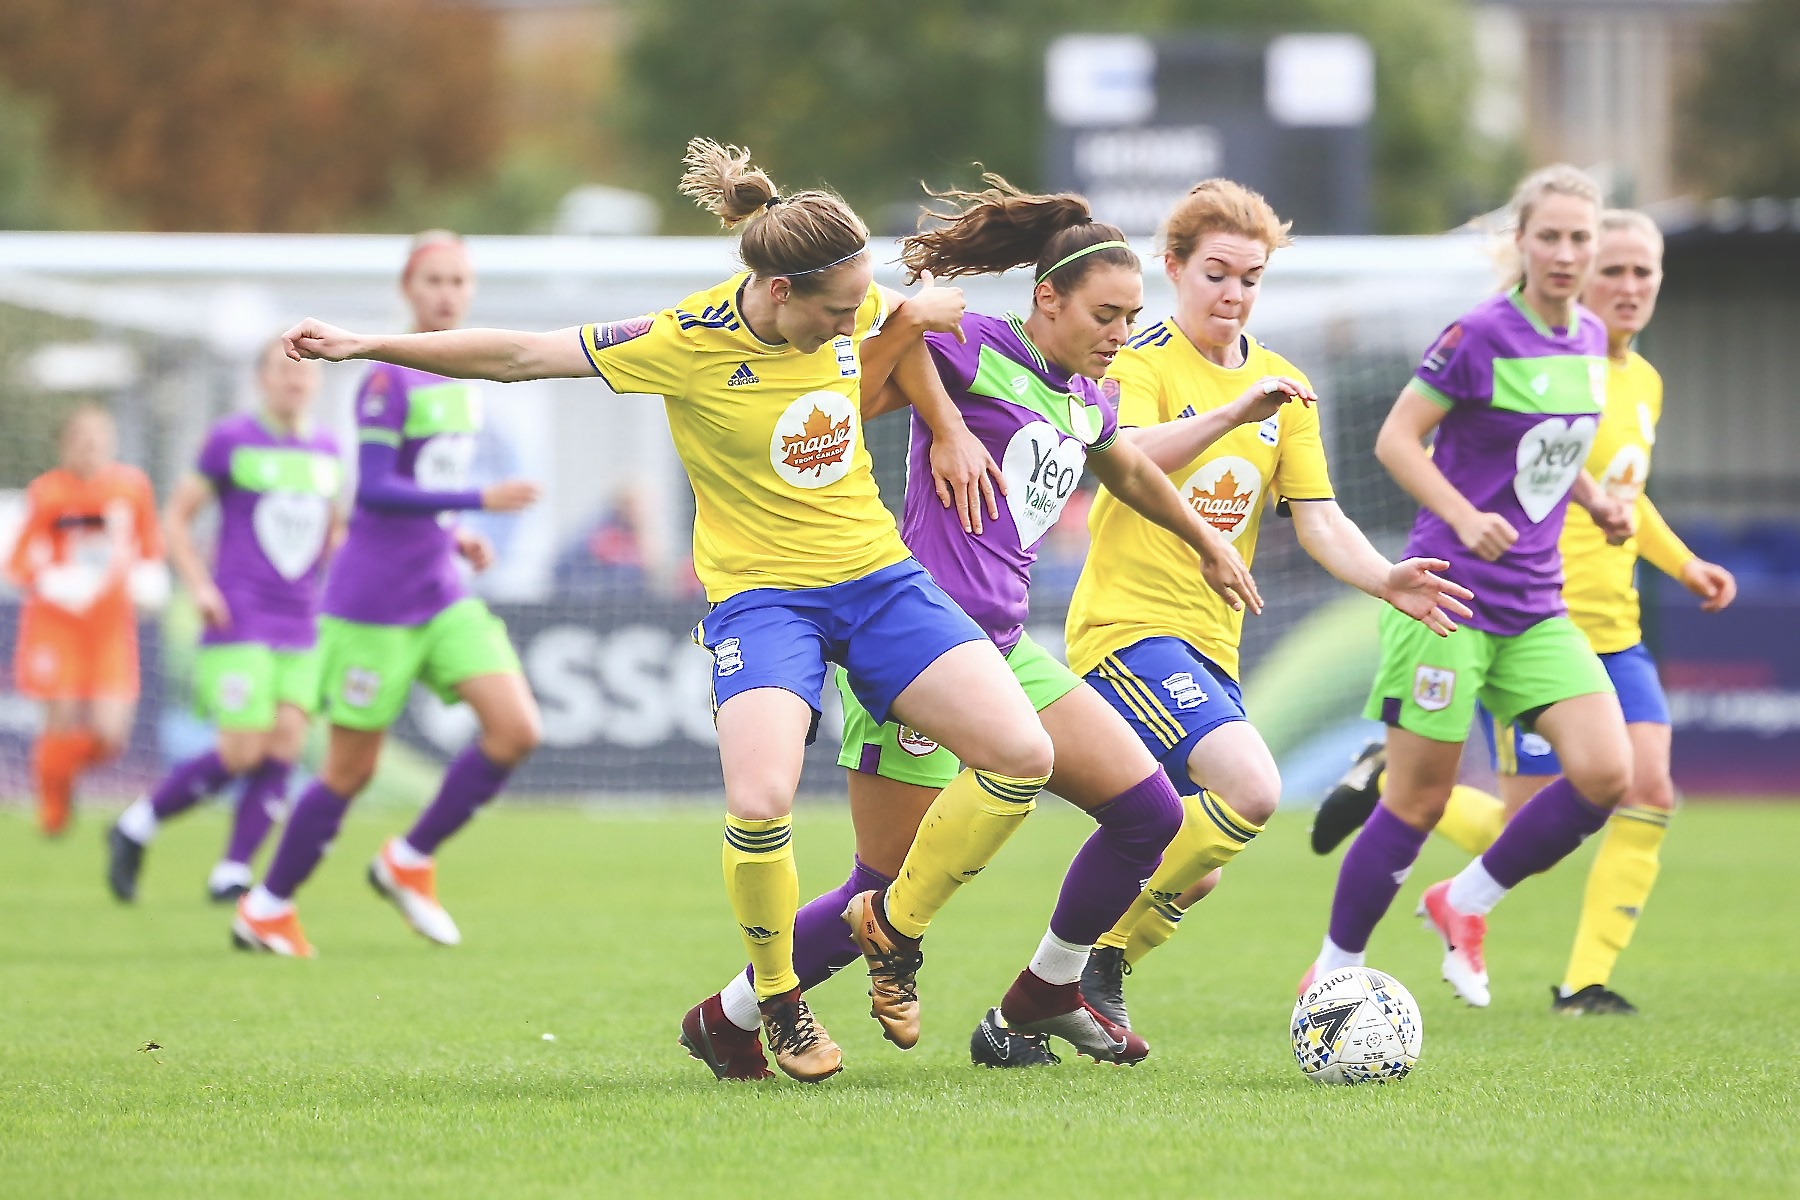 Ellie Rutherford and Aoife Mannion for Bristol City Women against Birmingham City Women